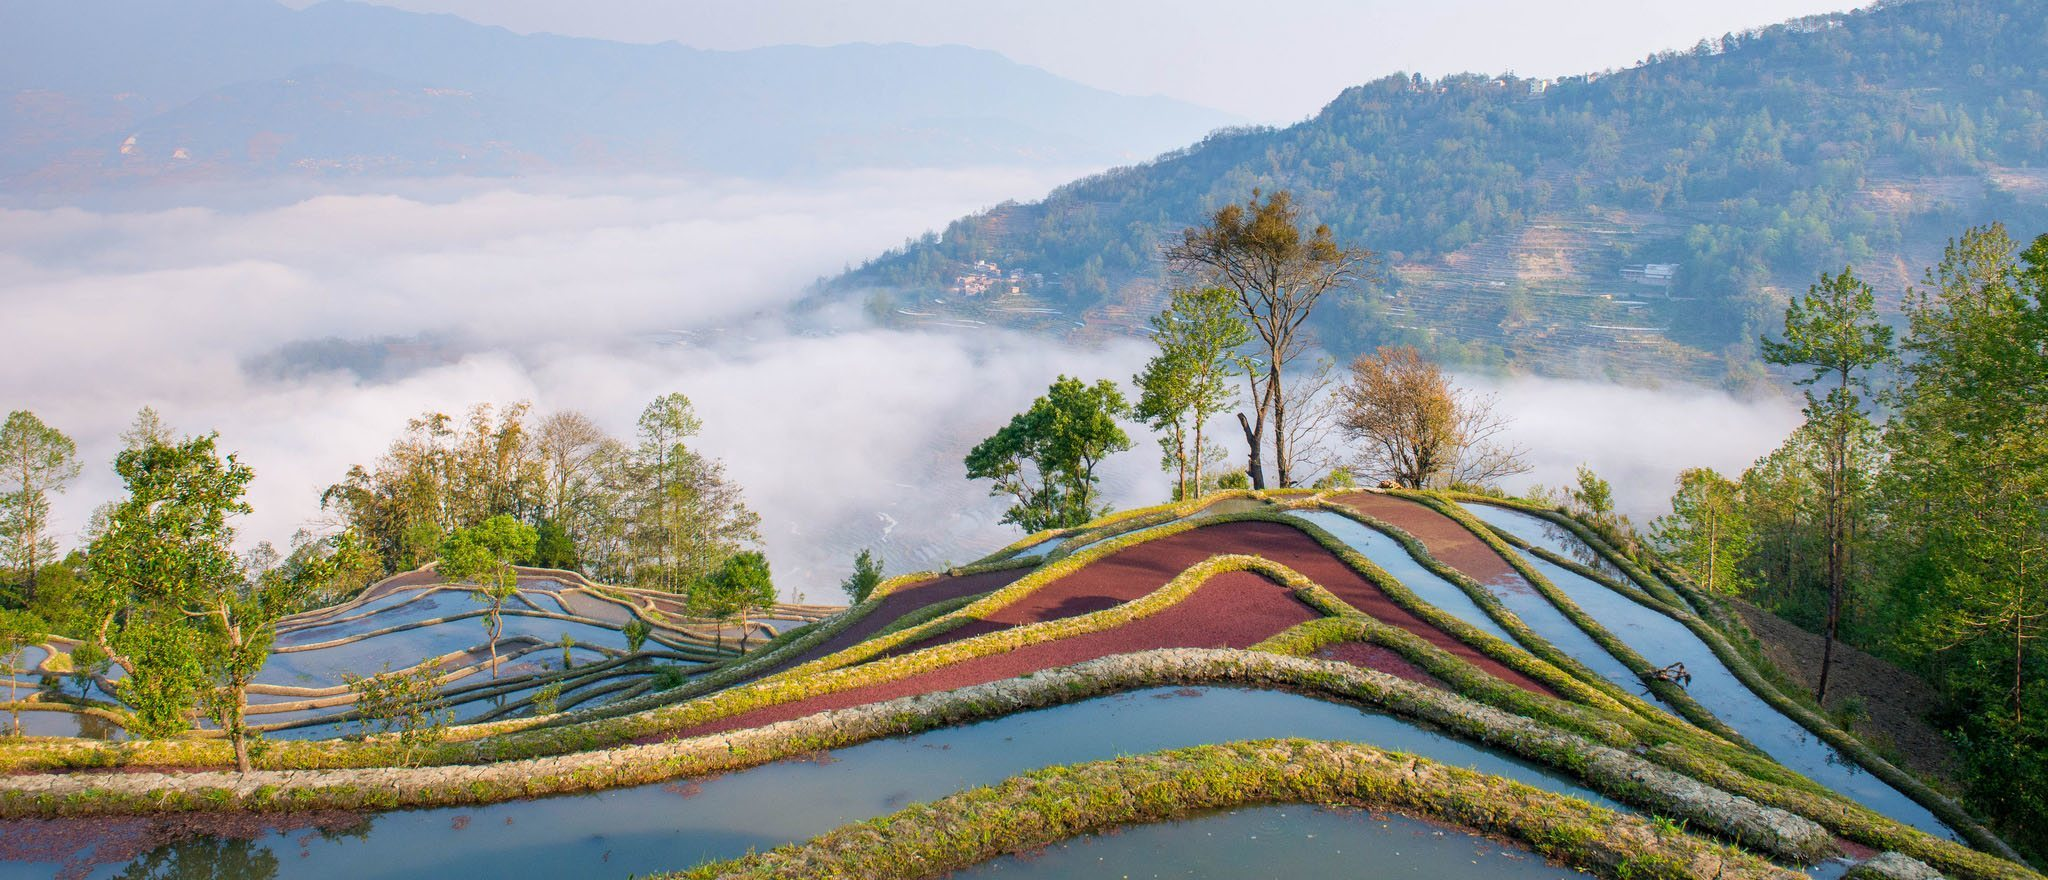 Agriculture tech: next big opportunity in Southeast Asia?